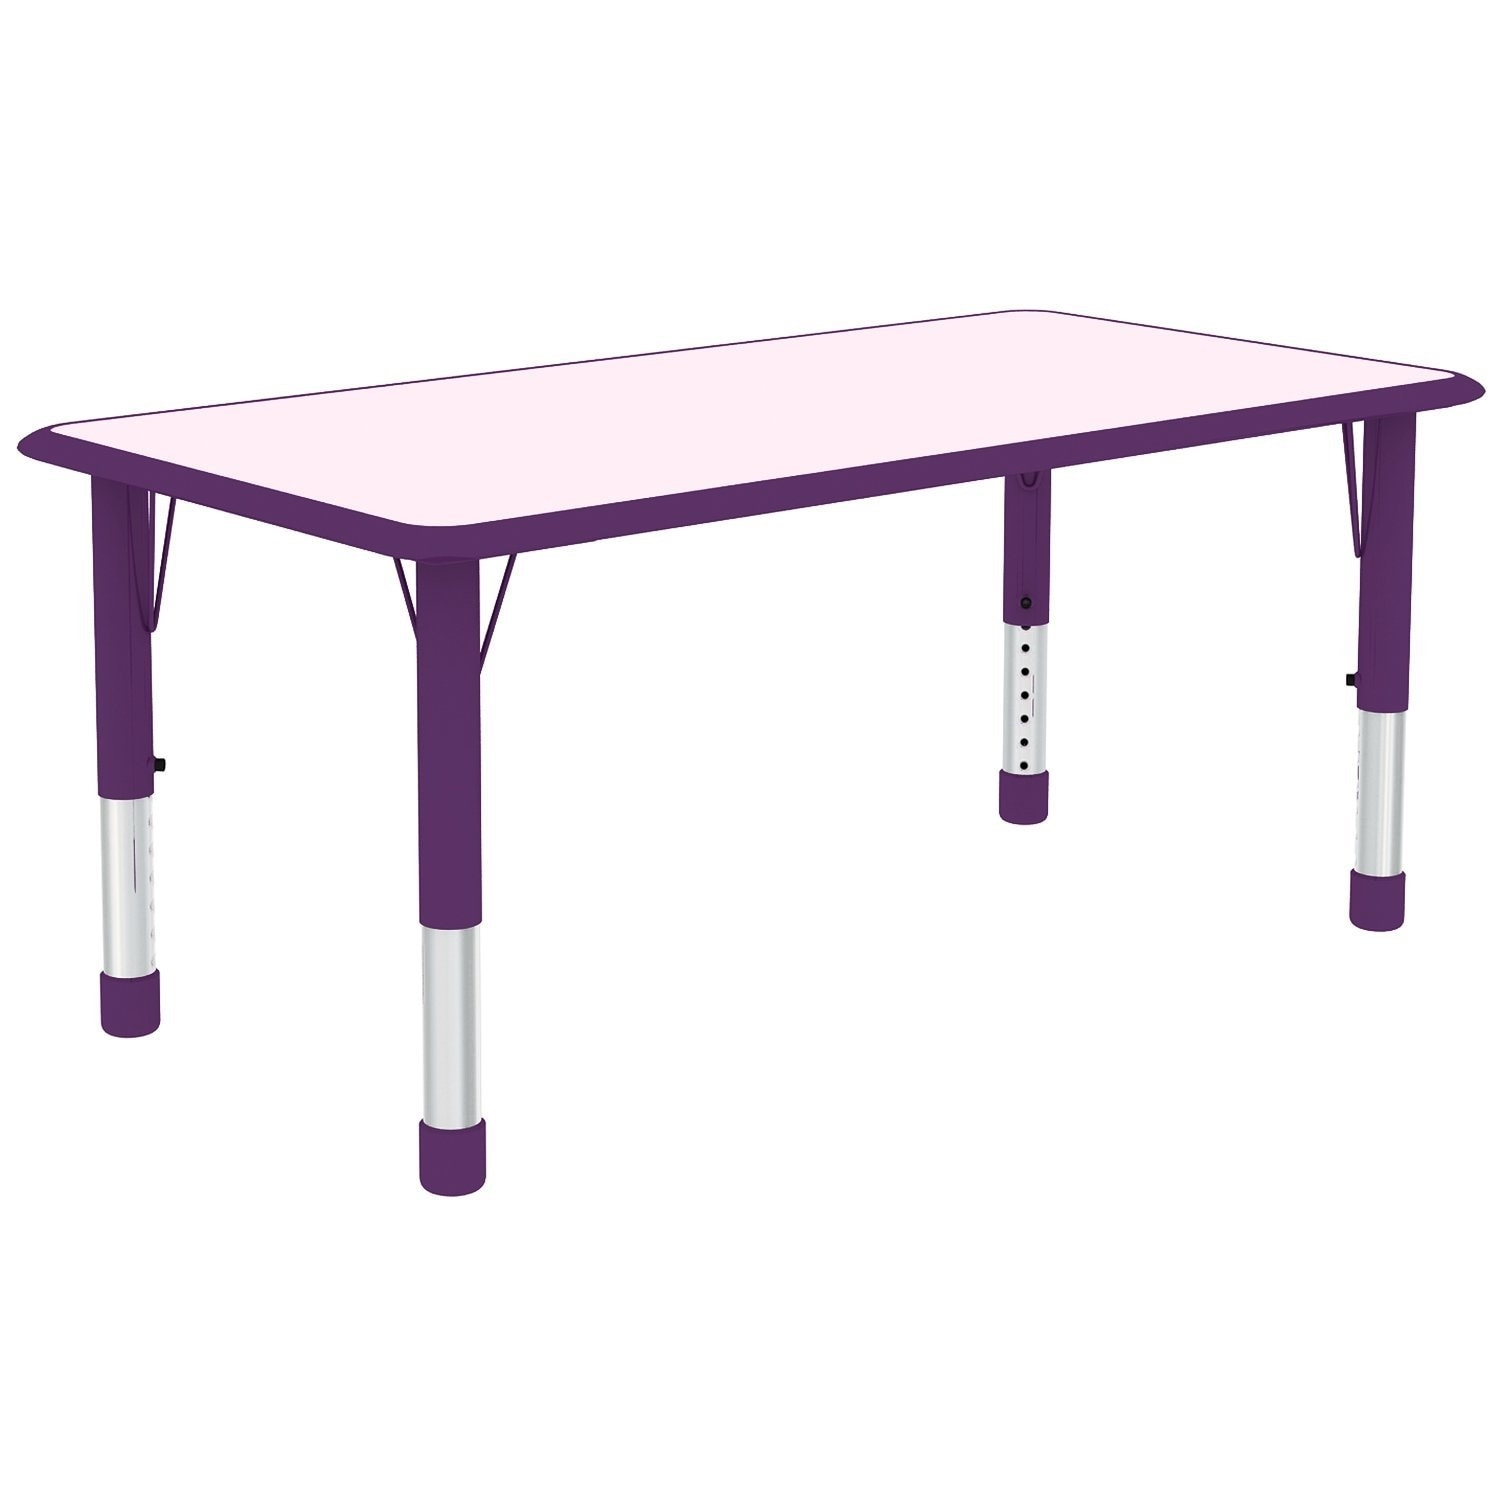 Bon Shop 2xhome Adjustable Height Table For Toddler Child Kids Children  Preschool School Daycare Wood Activity Table Modern Home Purple   Free  Shipping Today ...